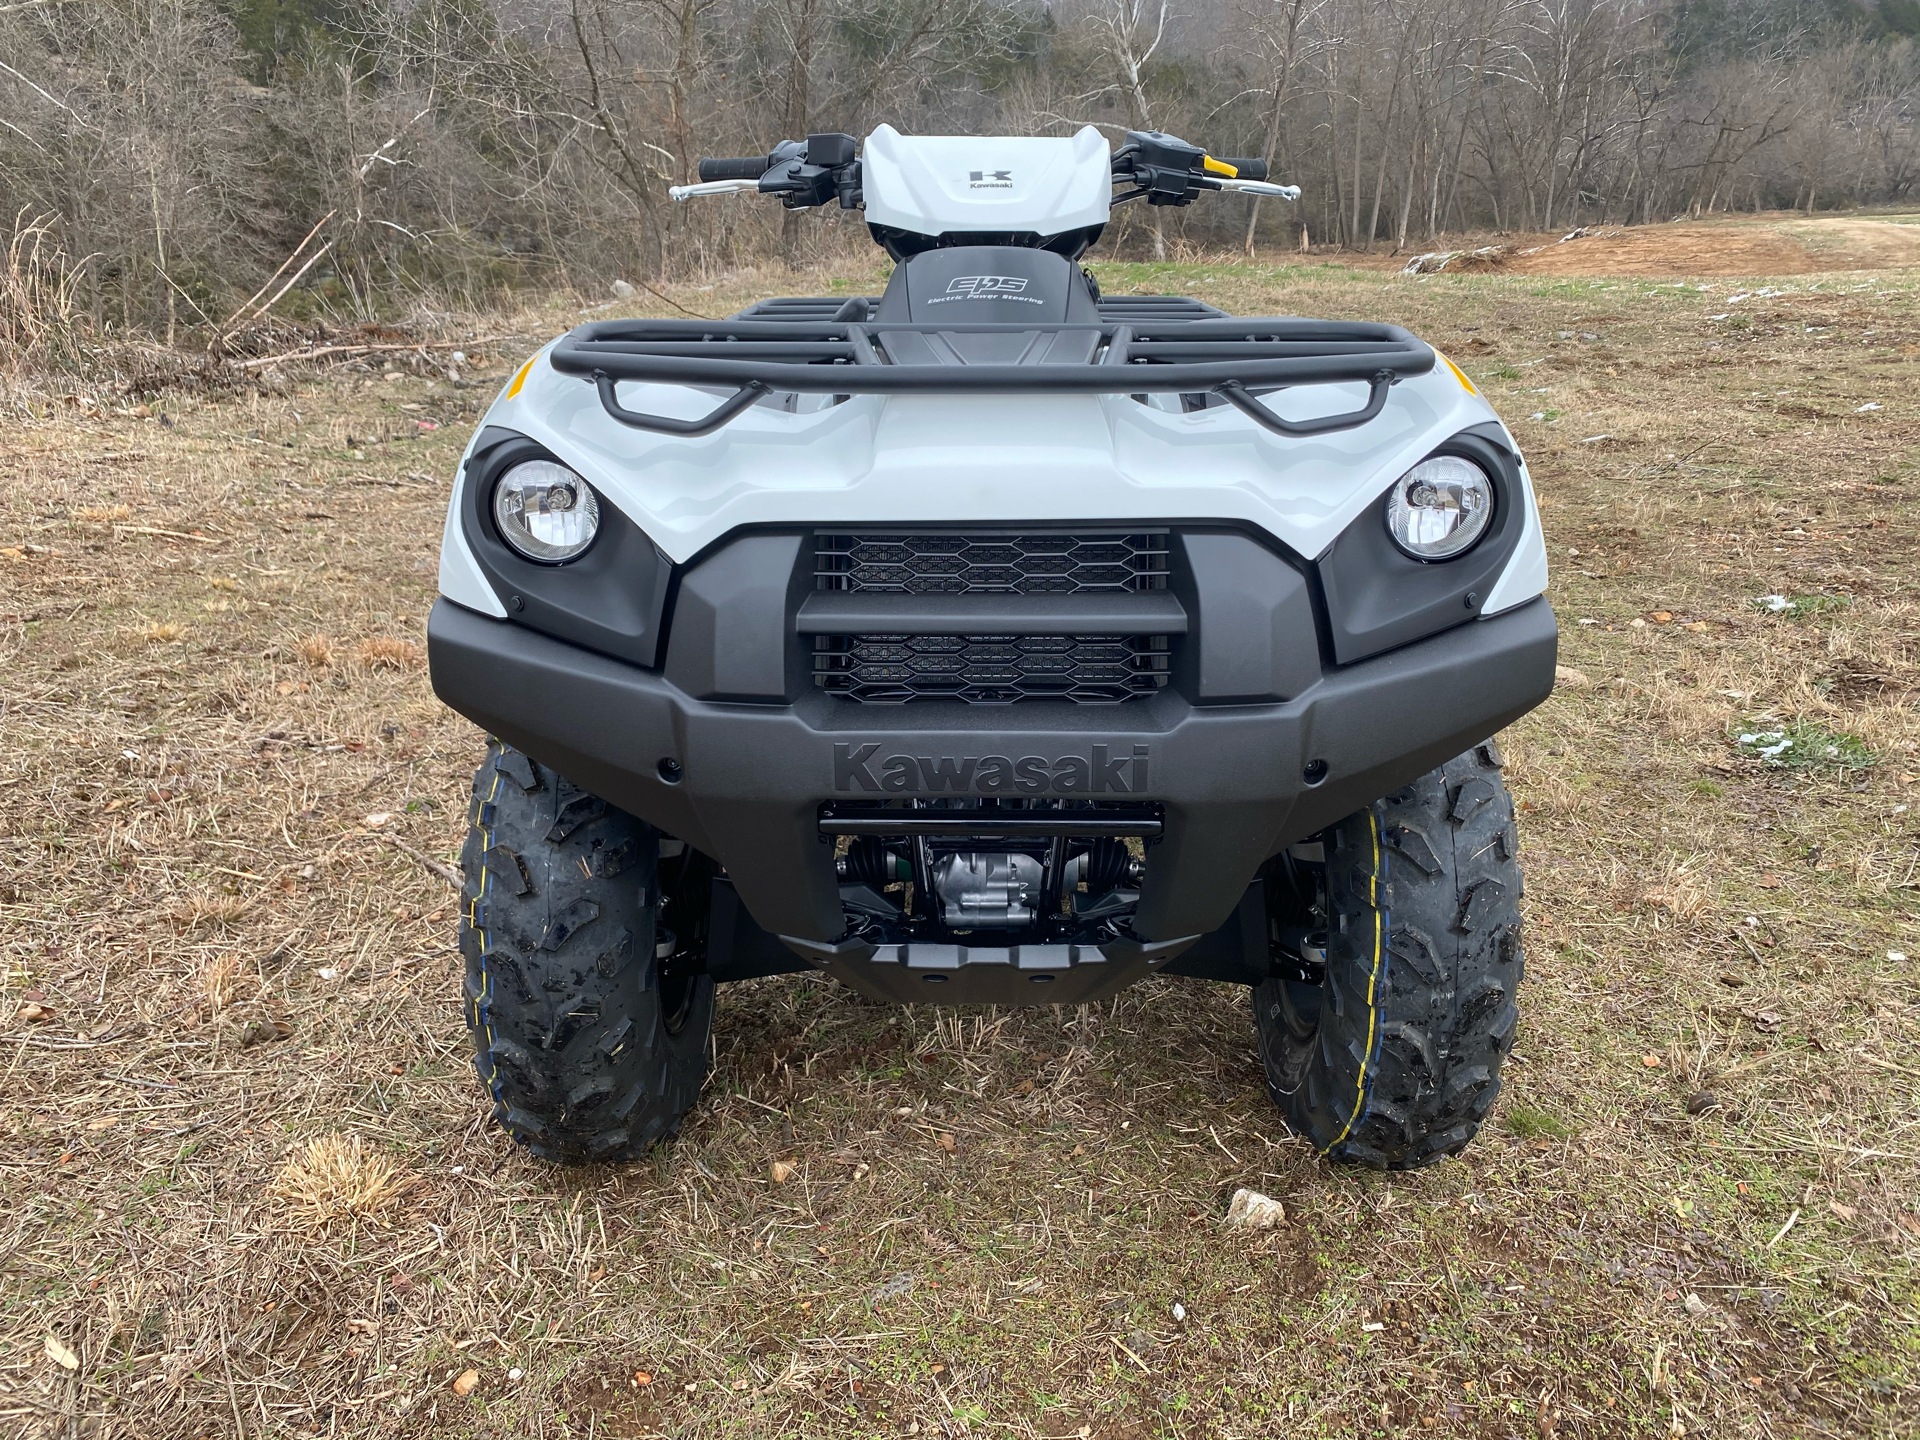 2021 Kawasaki Brute Force 750 4x4i EPS in Harrison, Arkansas - Photo 7